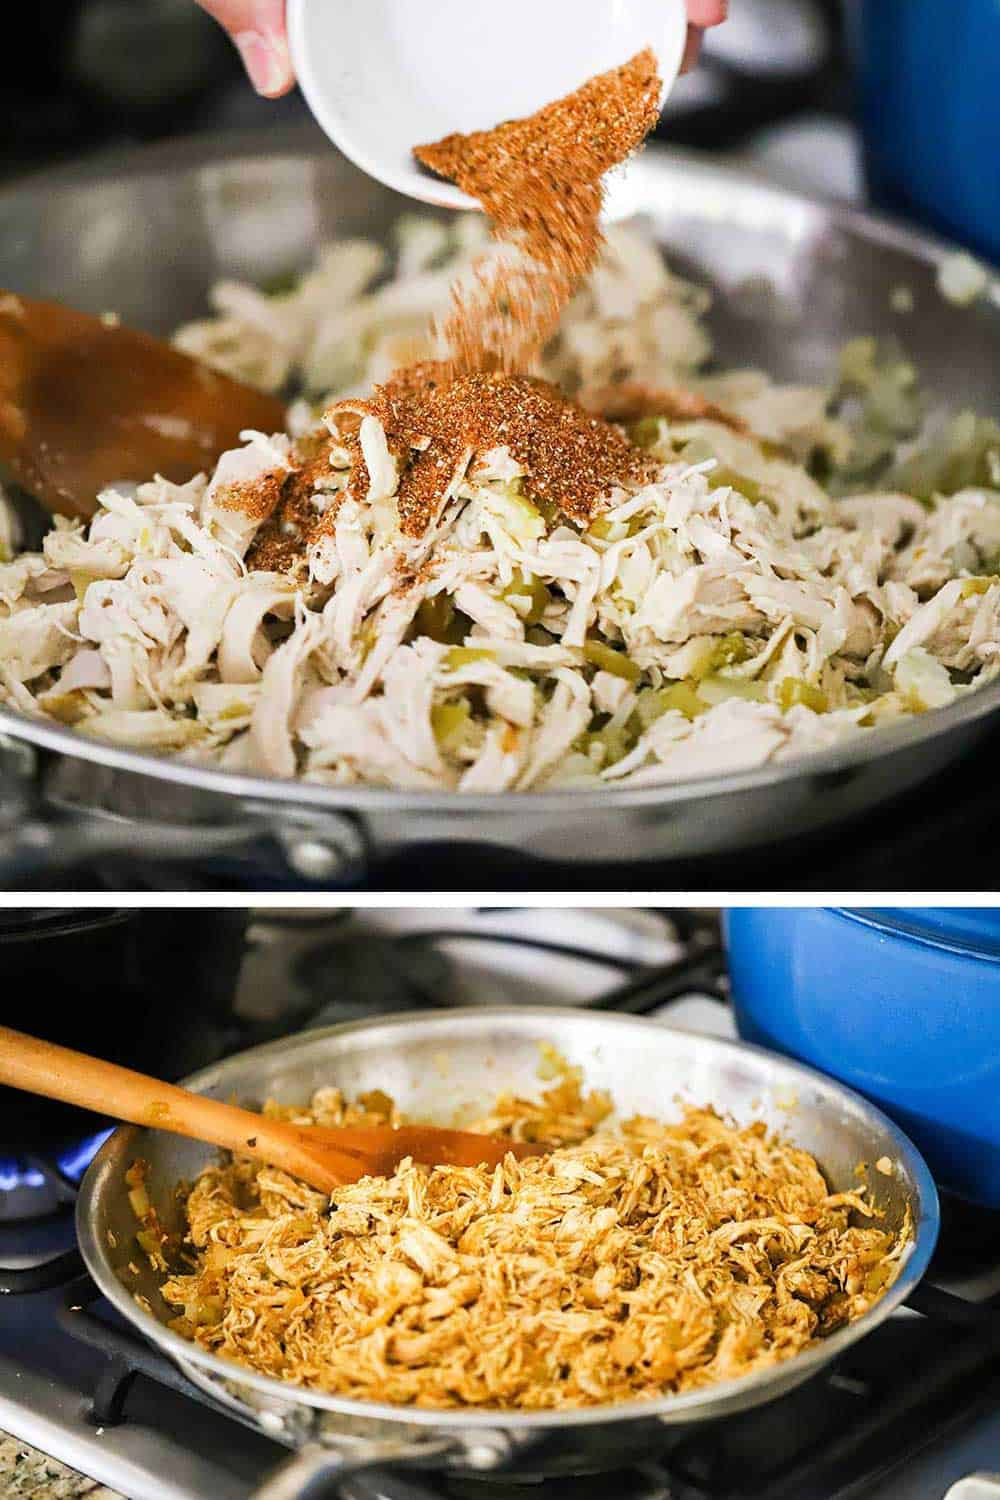 A person transferring taco seasoning from a small with bowl into a skillet of cooked, shredded chicken, and then a spoon stirring the seasoned chicken in the same skillet.